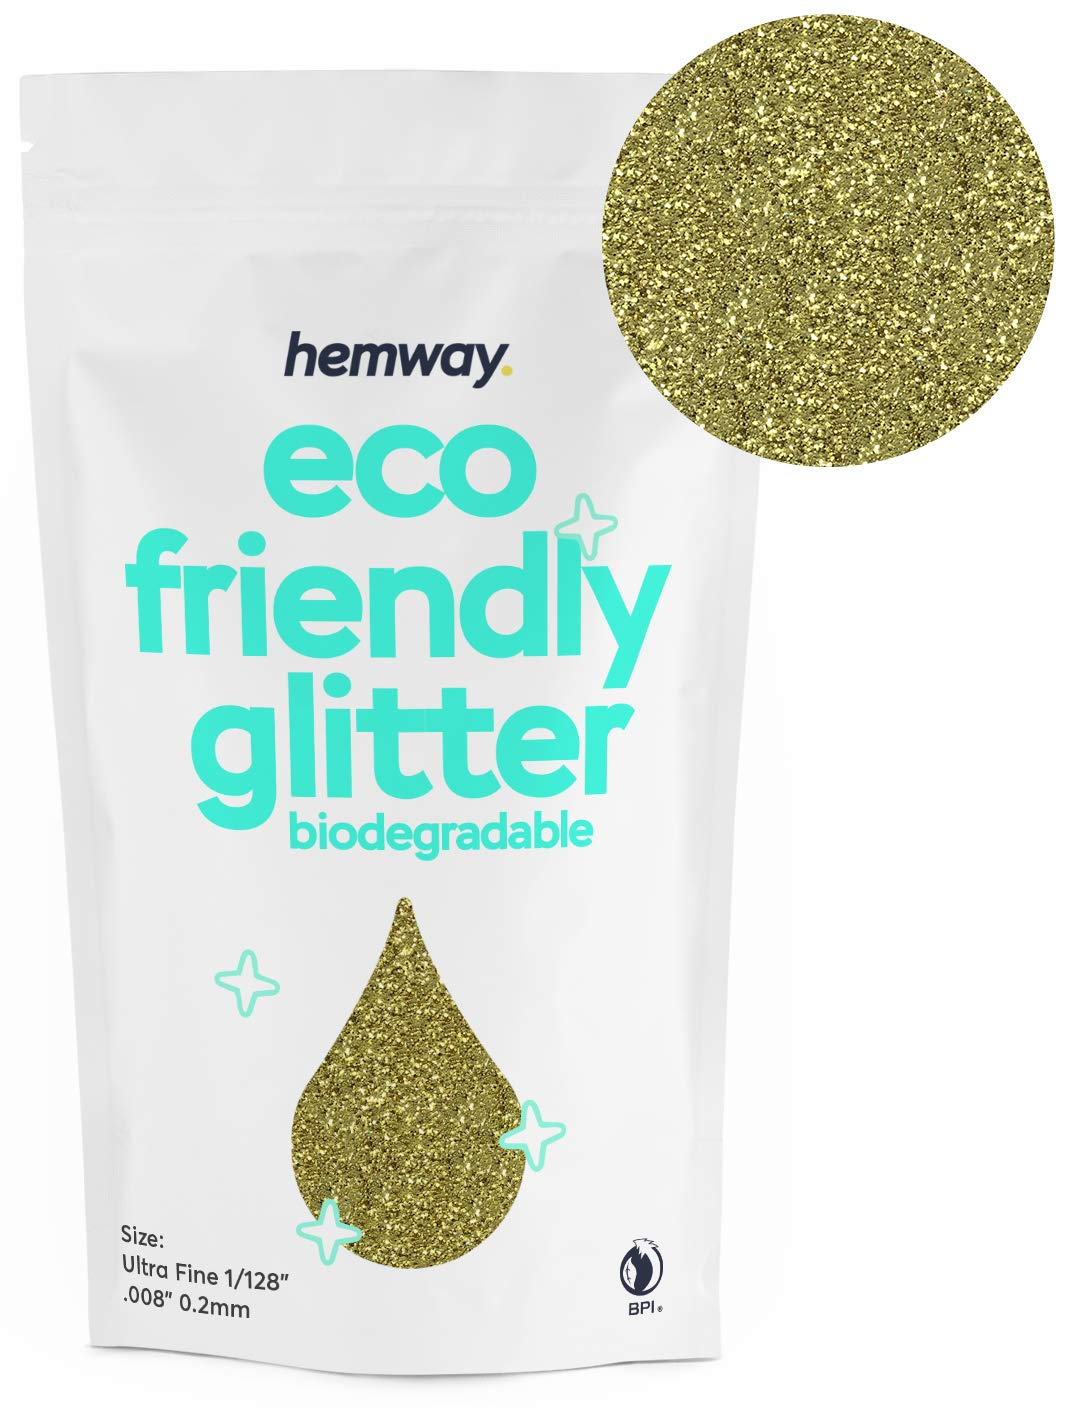 """Hemway Eco Friendly Biodegradable Glitter 100g / 3.5oz Bio Cosmetic Safe Sparkle Vegan For Face, Eyeshadow, Body, Hair, Nail And Festival Makeup, Craft - 1/128"""" 0.008"""" 0.2mm - Sand Gold"""